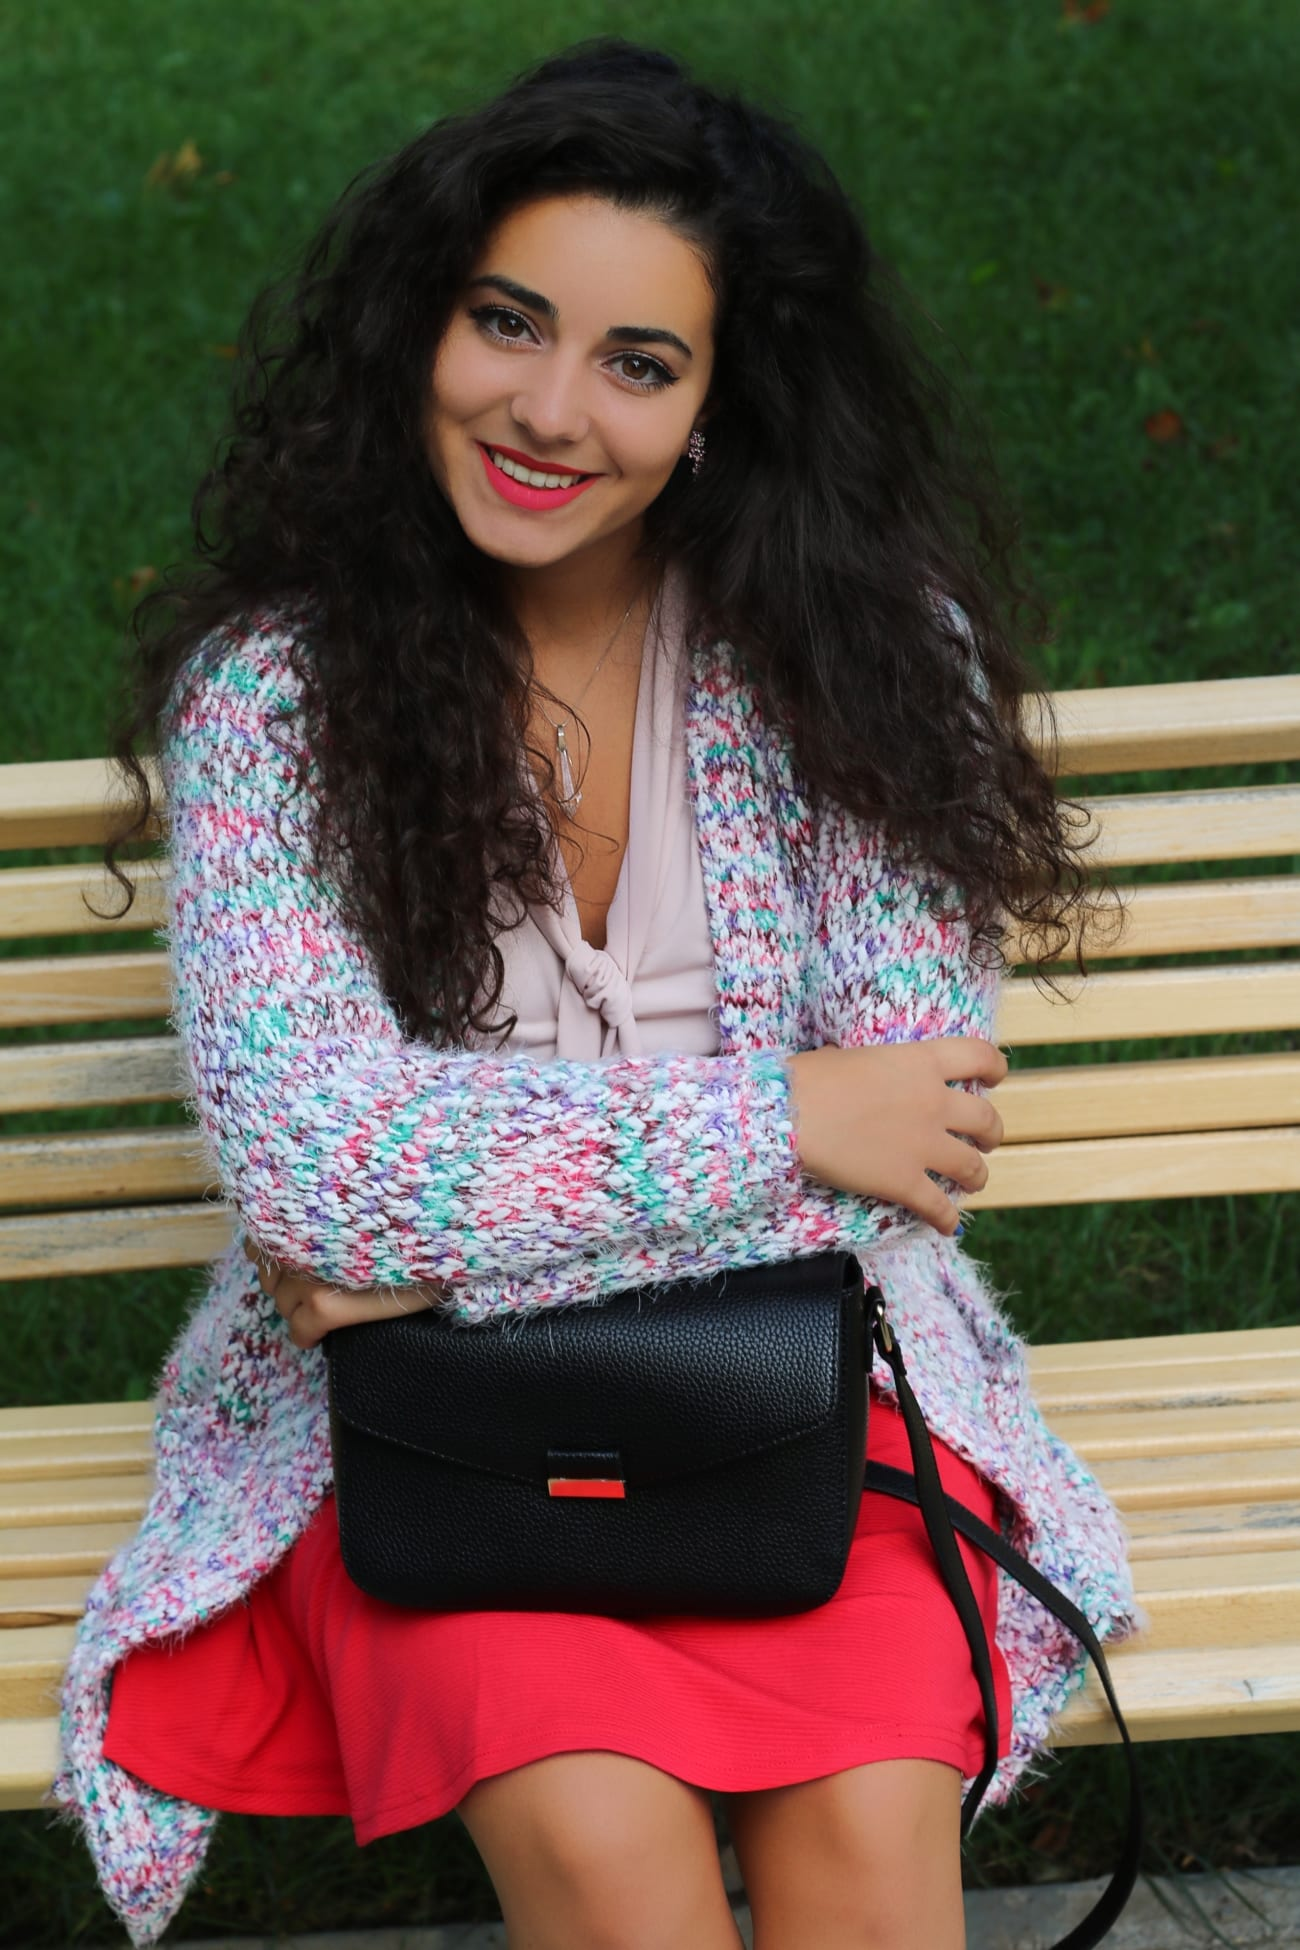 reserved-timis-roxi-rose-fashion-blogger-romania-shopping-city-timisoara-concurs-back-to-office-outfit-transitional-idei-news-stiri-21